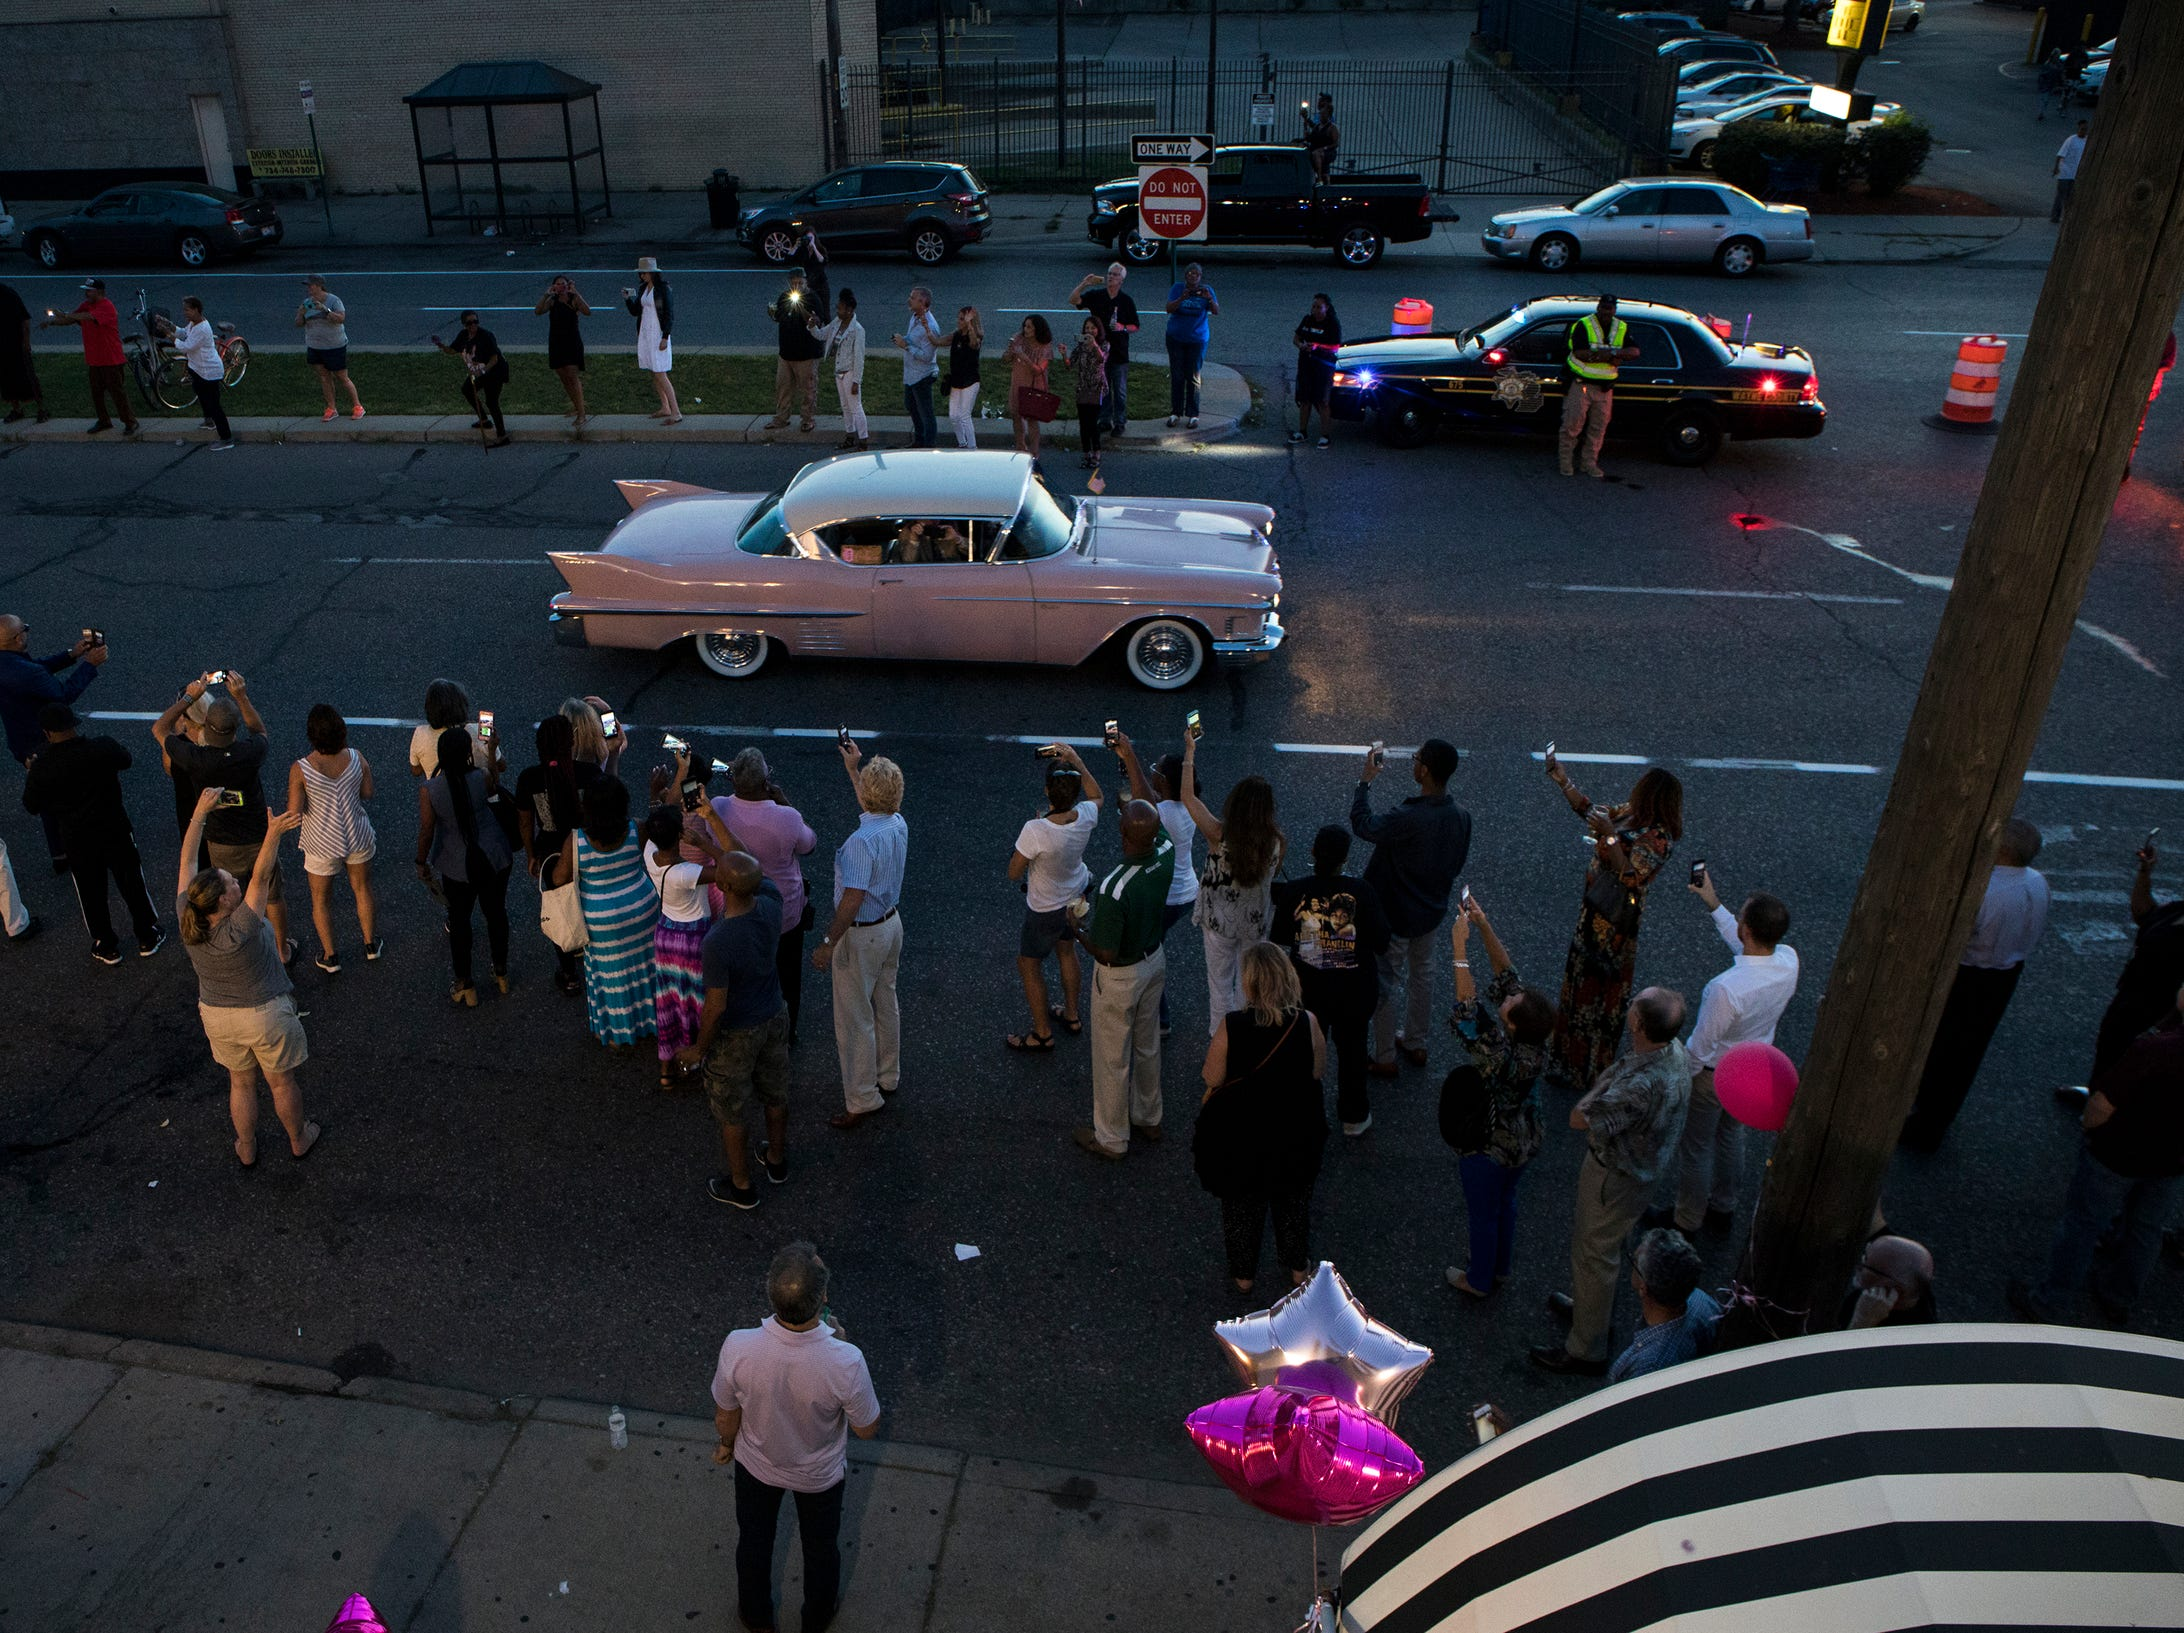 Crowds cheer as pink Cadillacs lead the funeral procession for Aretha Franklin on Livernois Avenue in Detroit, Mich., Friday, August 31, 2018.